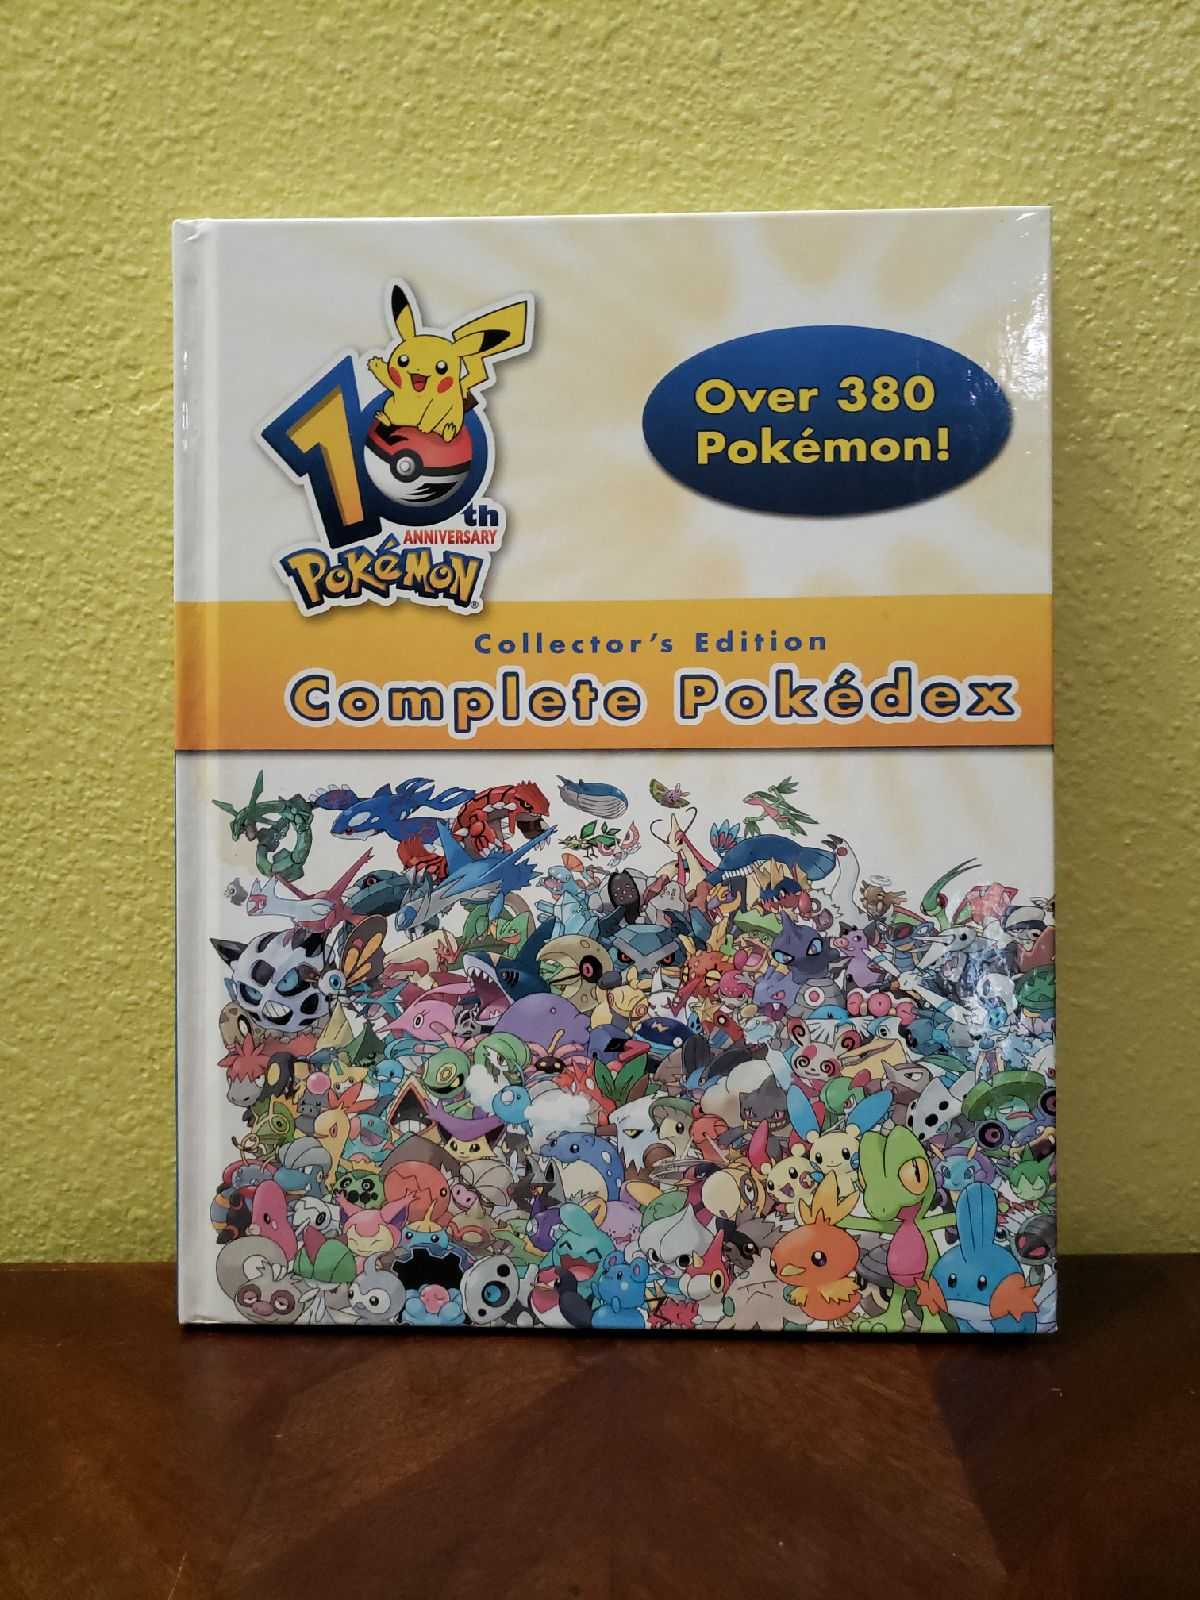 Pokémon 10th Anniversary Pokedex Book